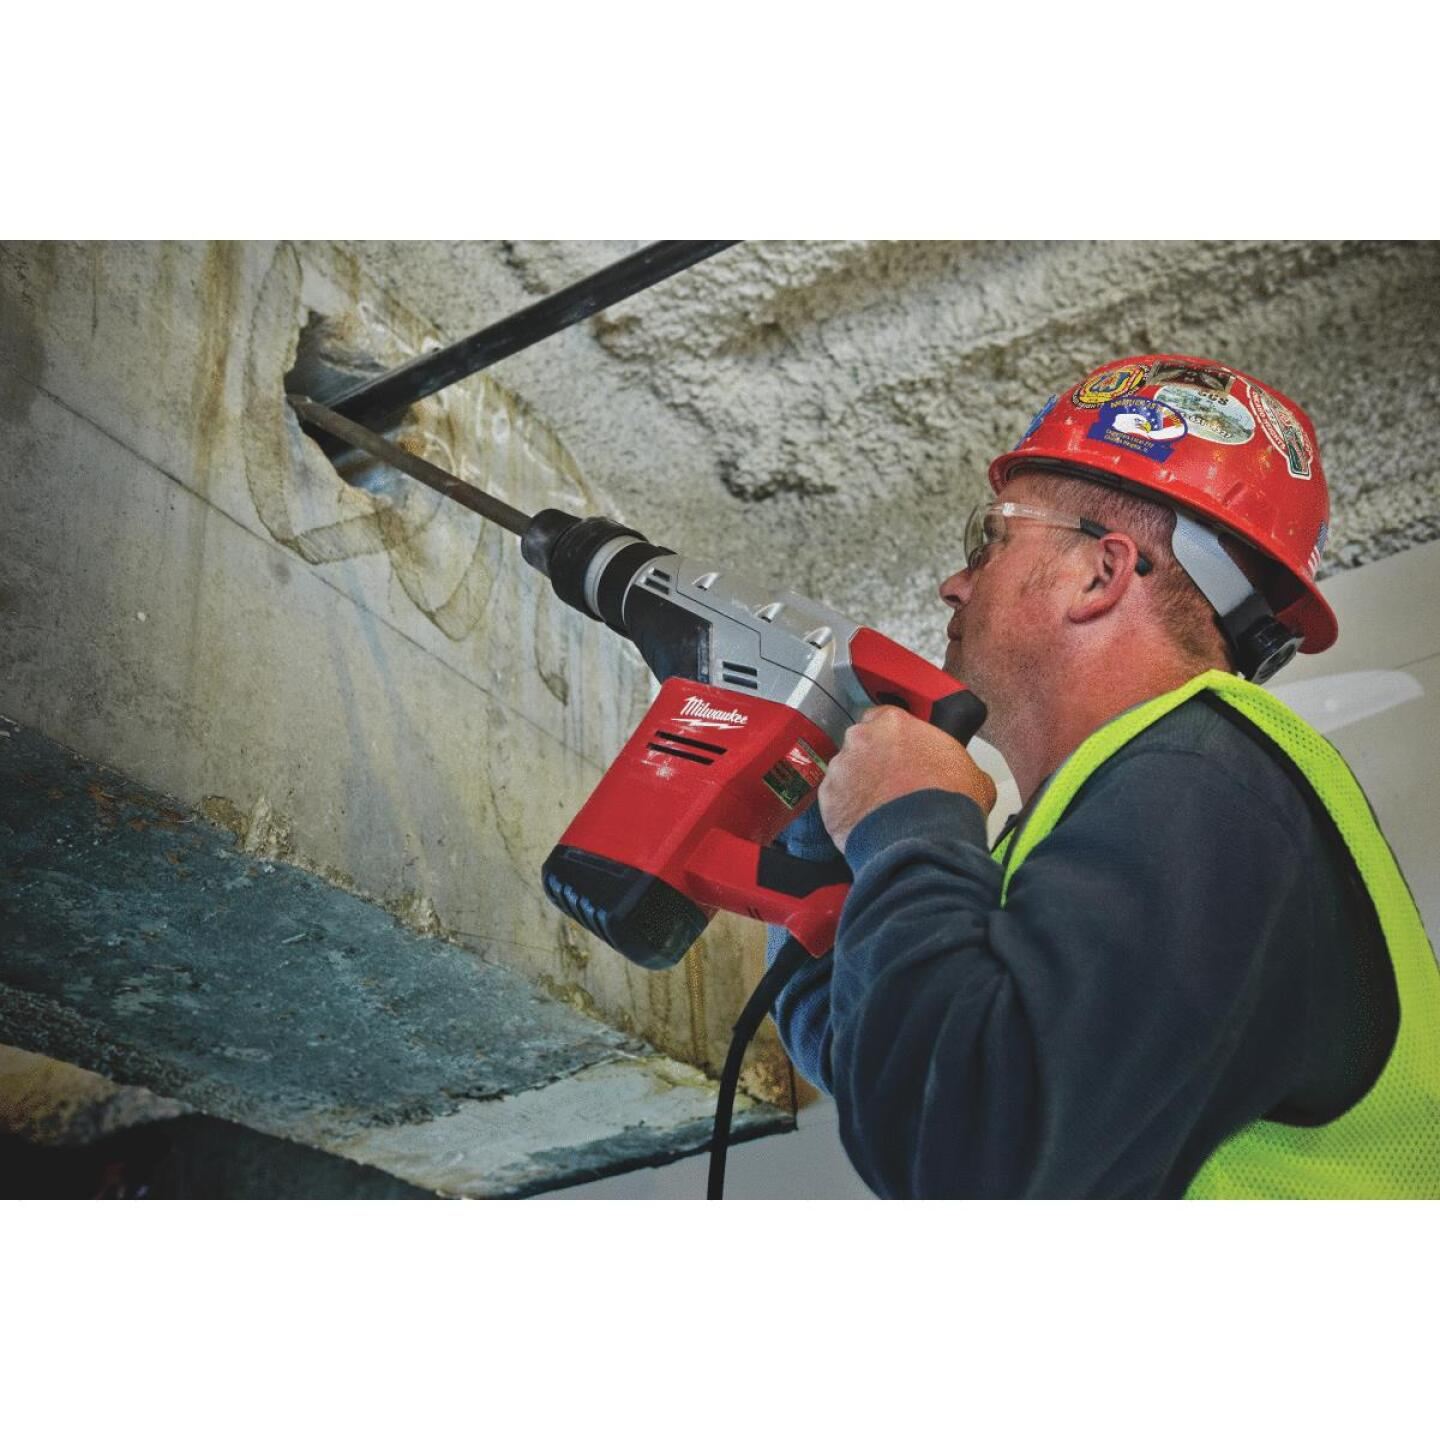 Milwaukee 1-9/16 In. SDS-Max Keyless 10.5-Amp Electric Rotary Hammer Drill Image 2